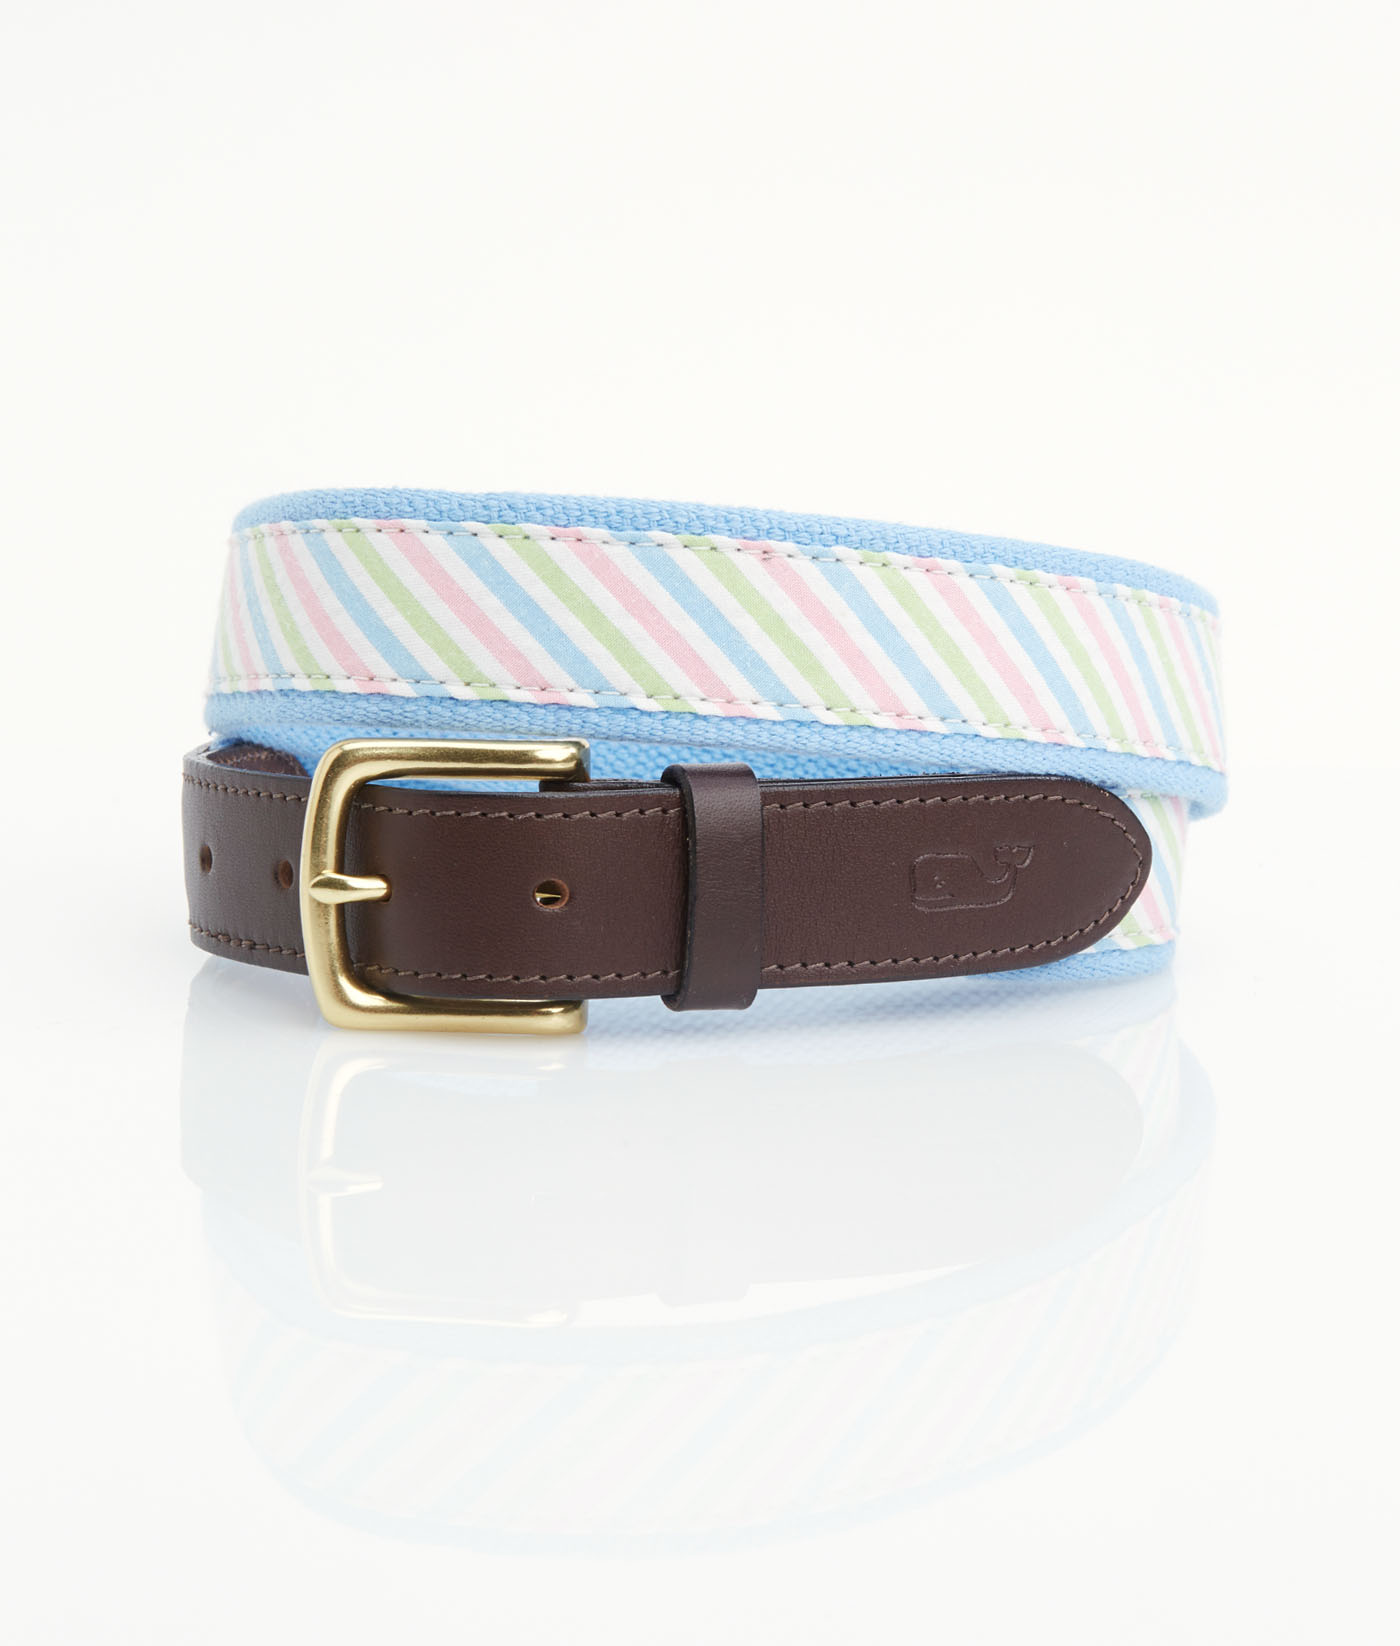 Three-Color Seersucker Belt,1A1003-998 MULT